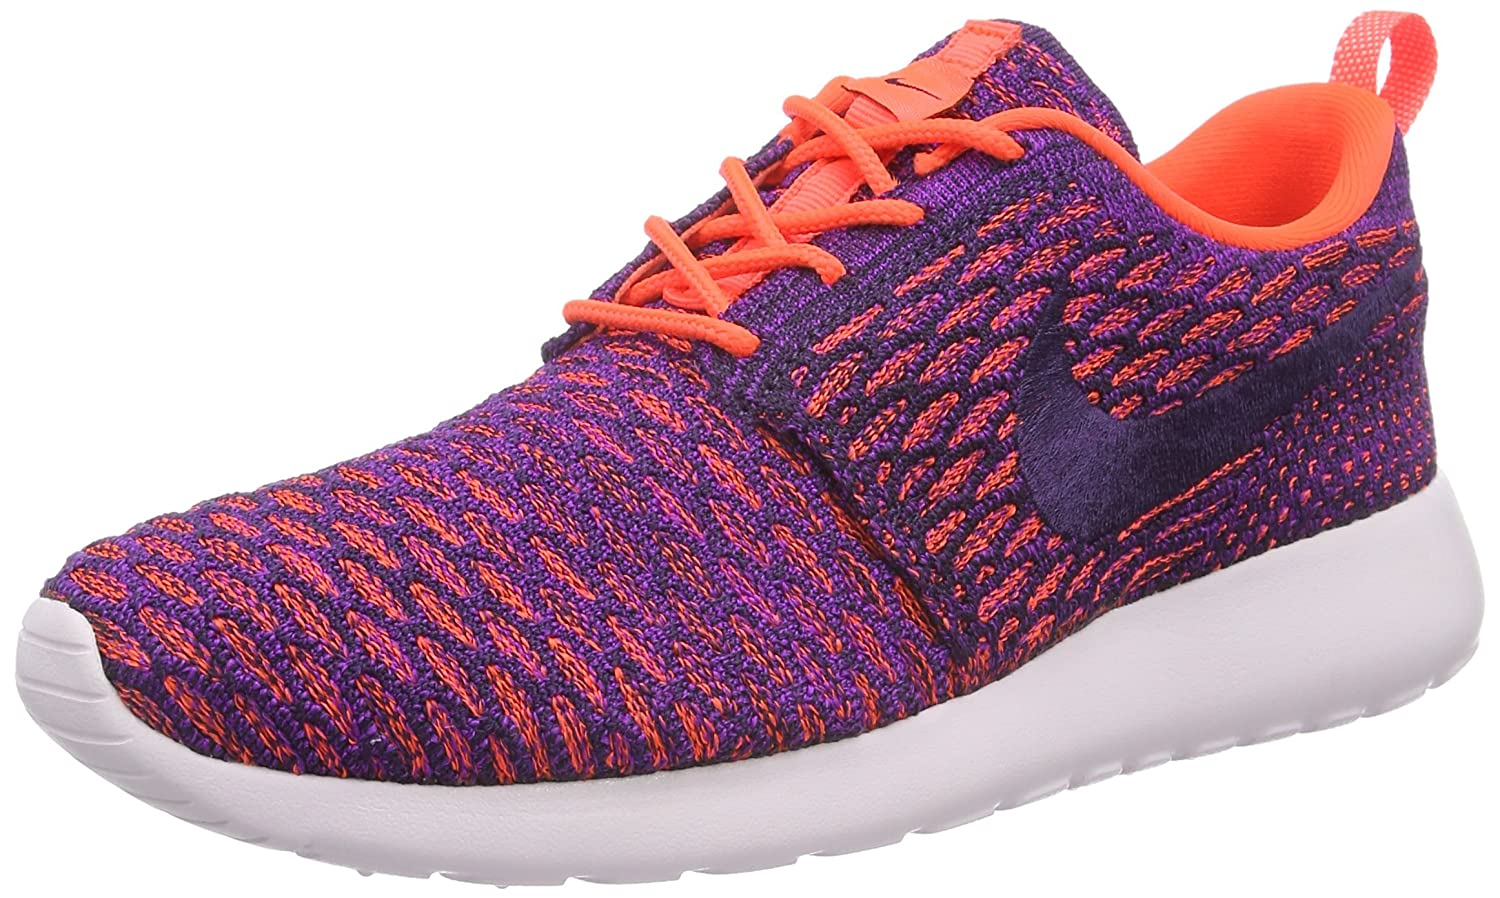 NIKE Womens Roshe One Flyknit Flyknit Colorblock Running Shoes B01F4P1VV2 6.5 B(M) US|Ttl Crimson/Grnd Purple-vvd Purple